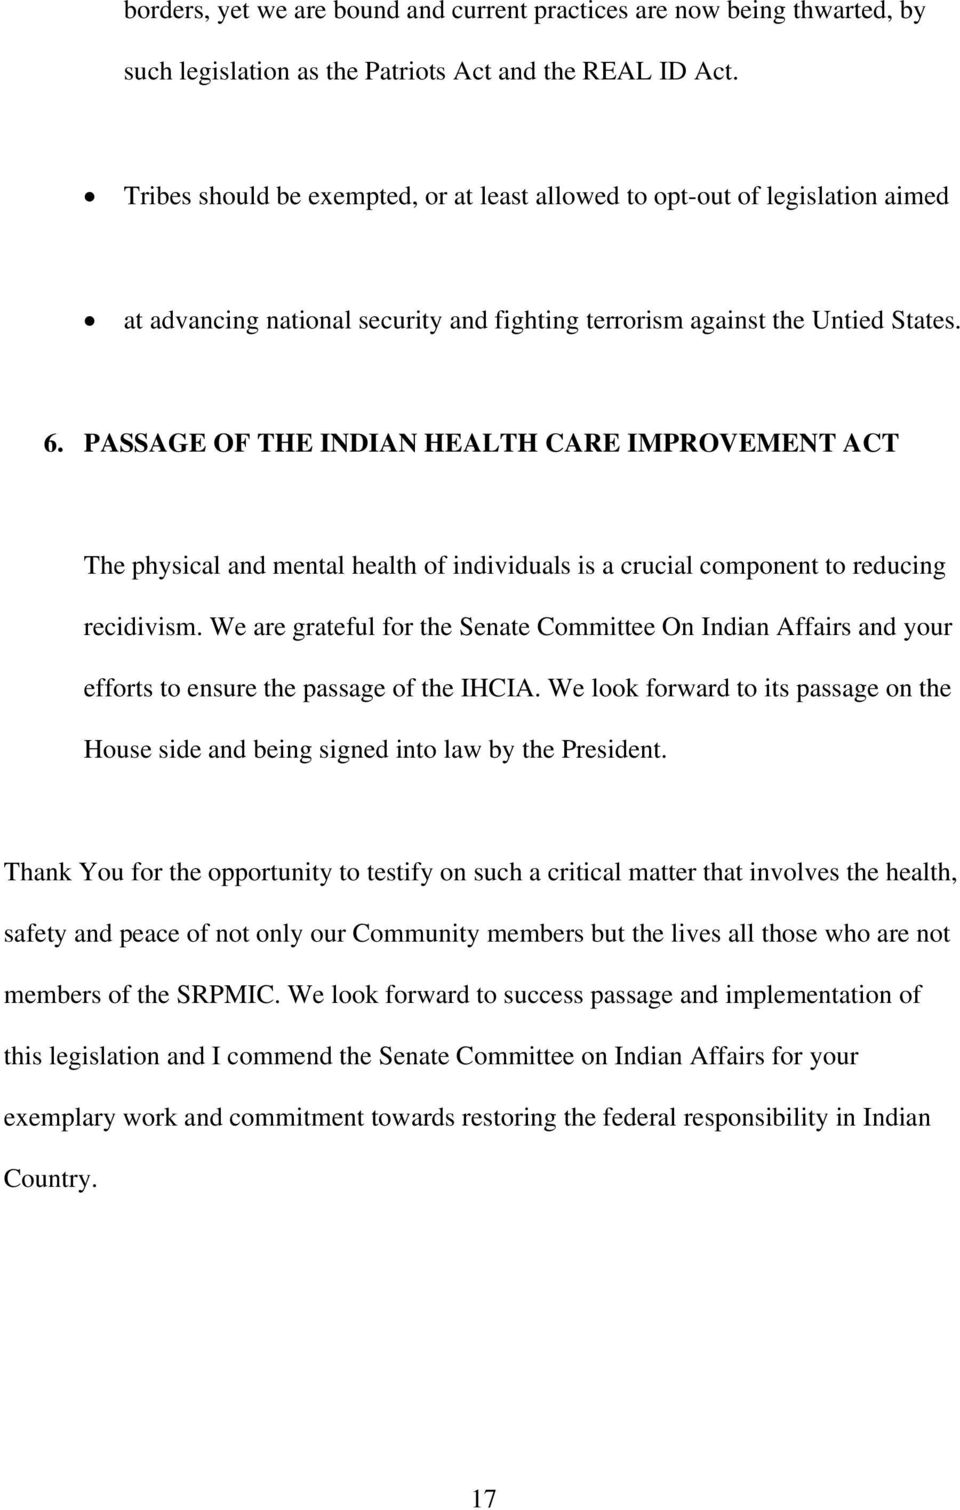 PASSAGE OF THE INDIAN HEALTH CARE IMPROVEMENT ACT The physical and mental health of individuals is a crucial component to reducing recidivism.